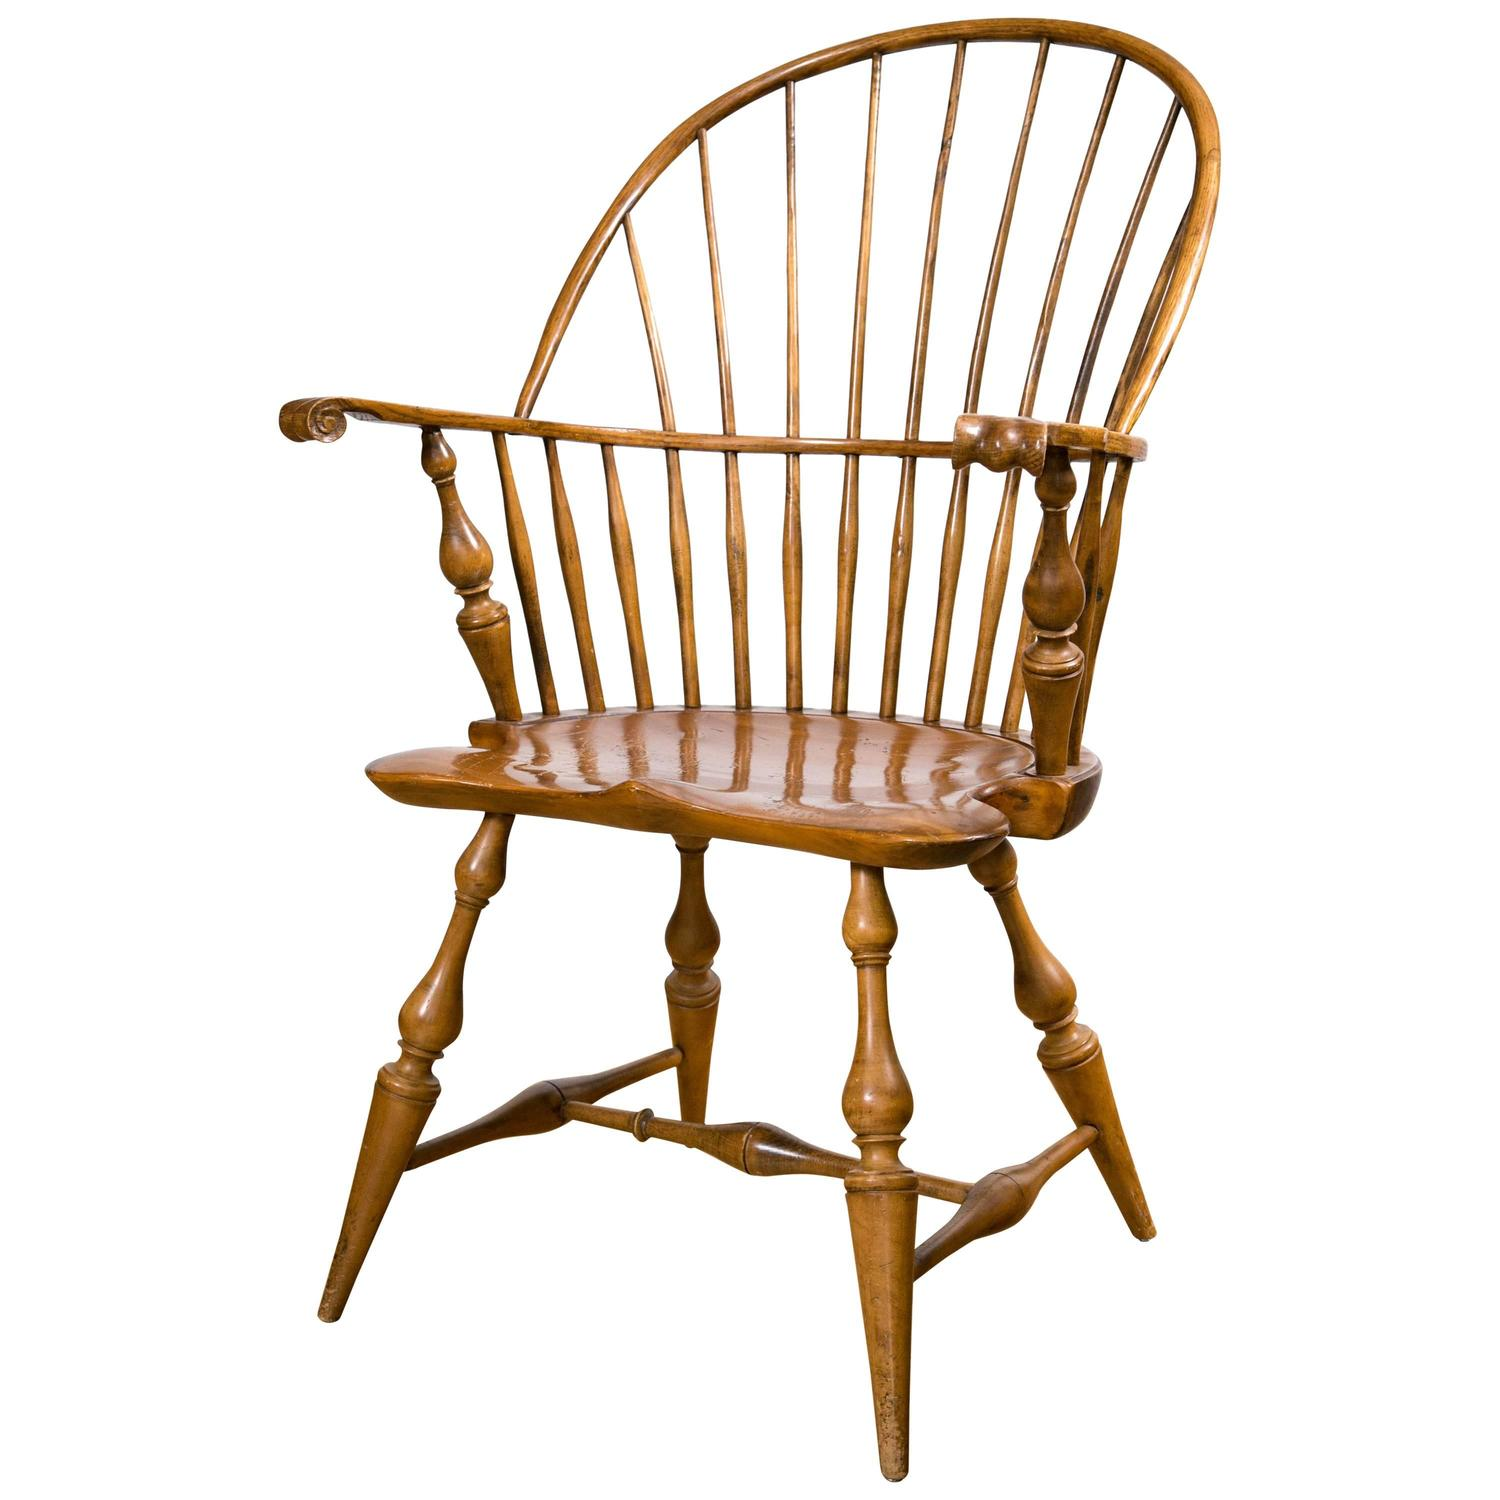 Federal Windsor Chairs - Antique And Vintage Windsor Chairs - 153 For Sale At 1stdibs